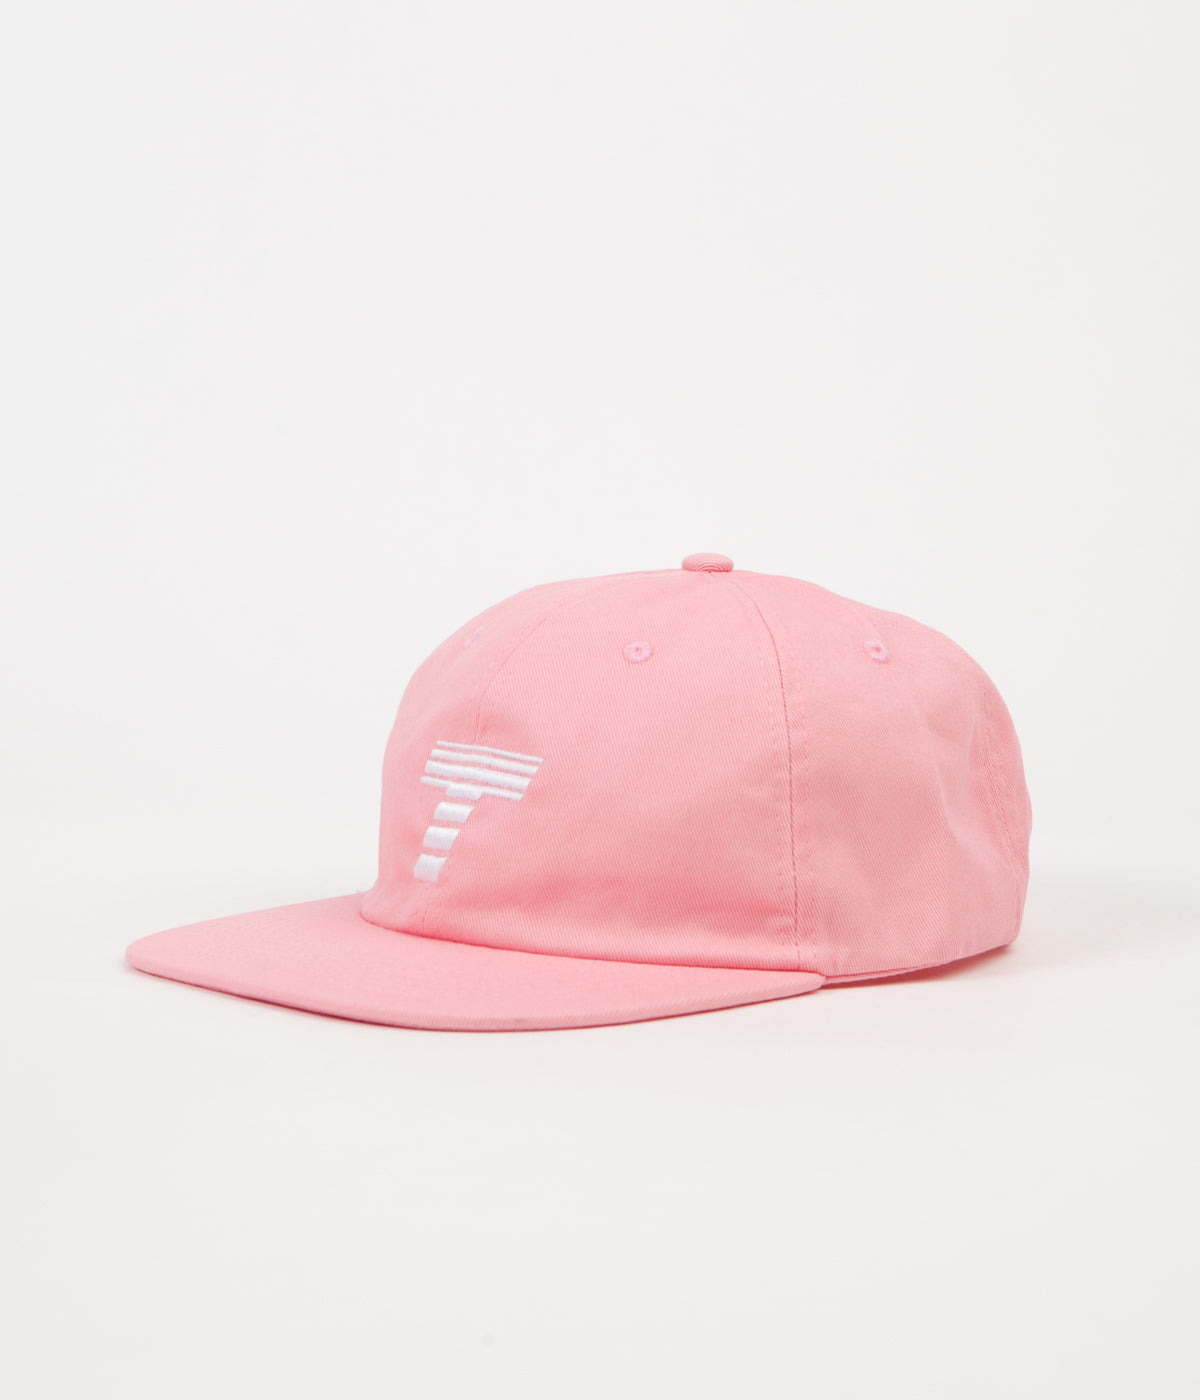 Theobalds Cap Co. Away Cap - Pink / White